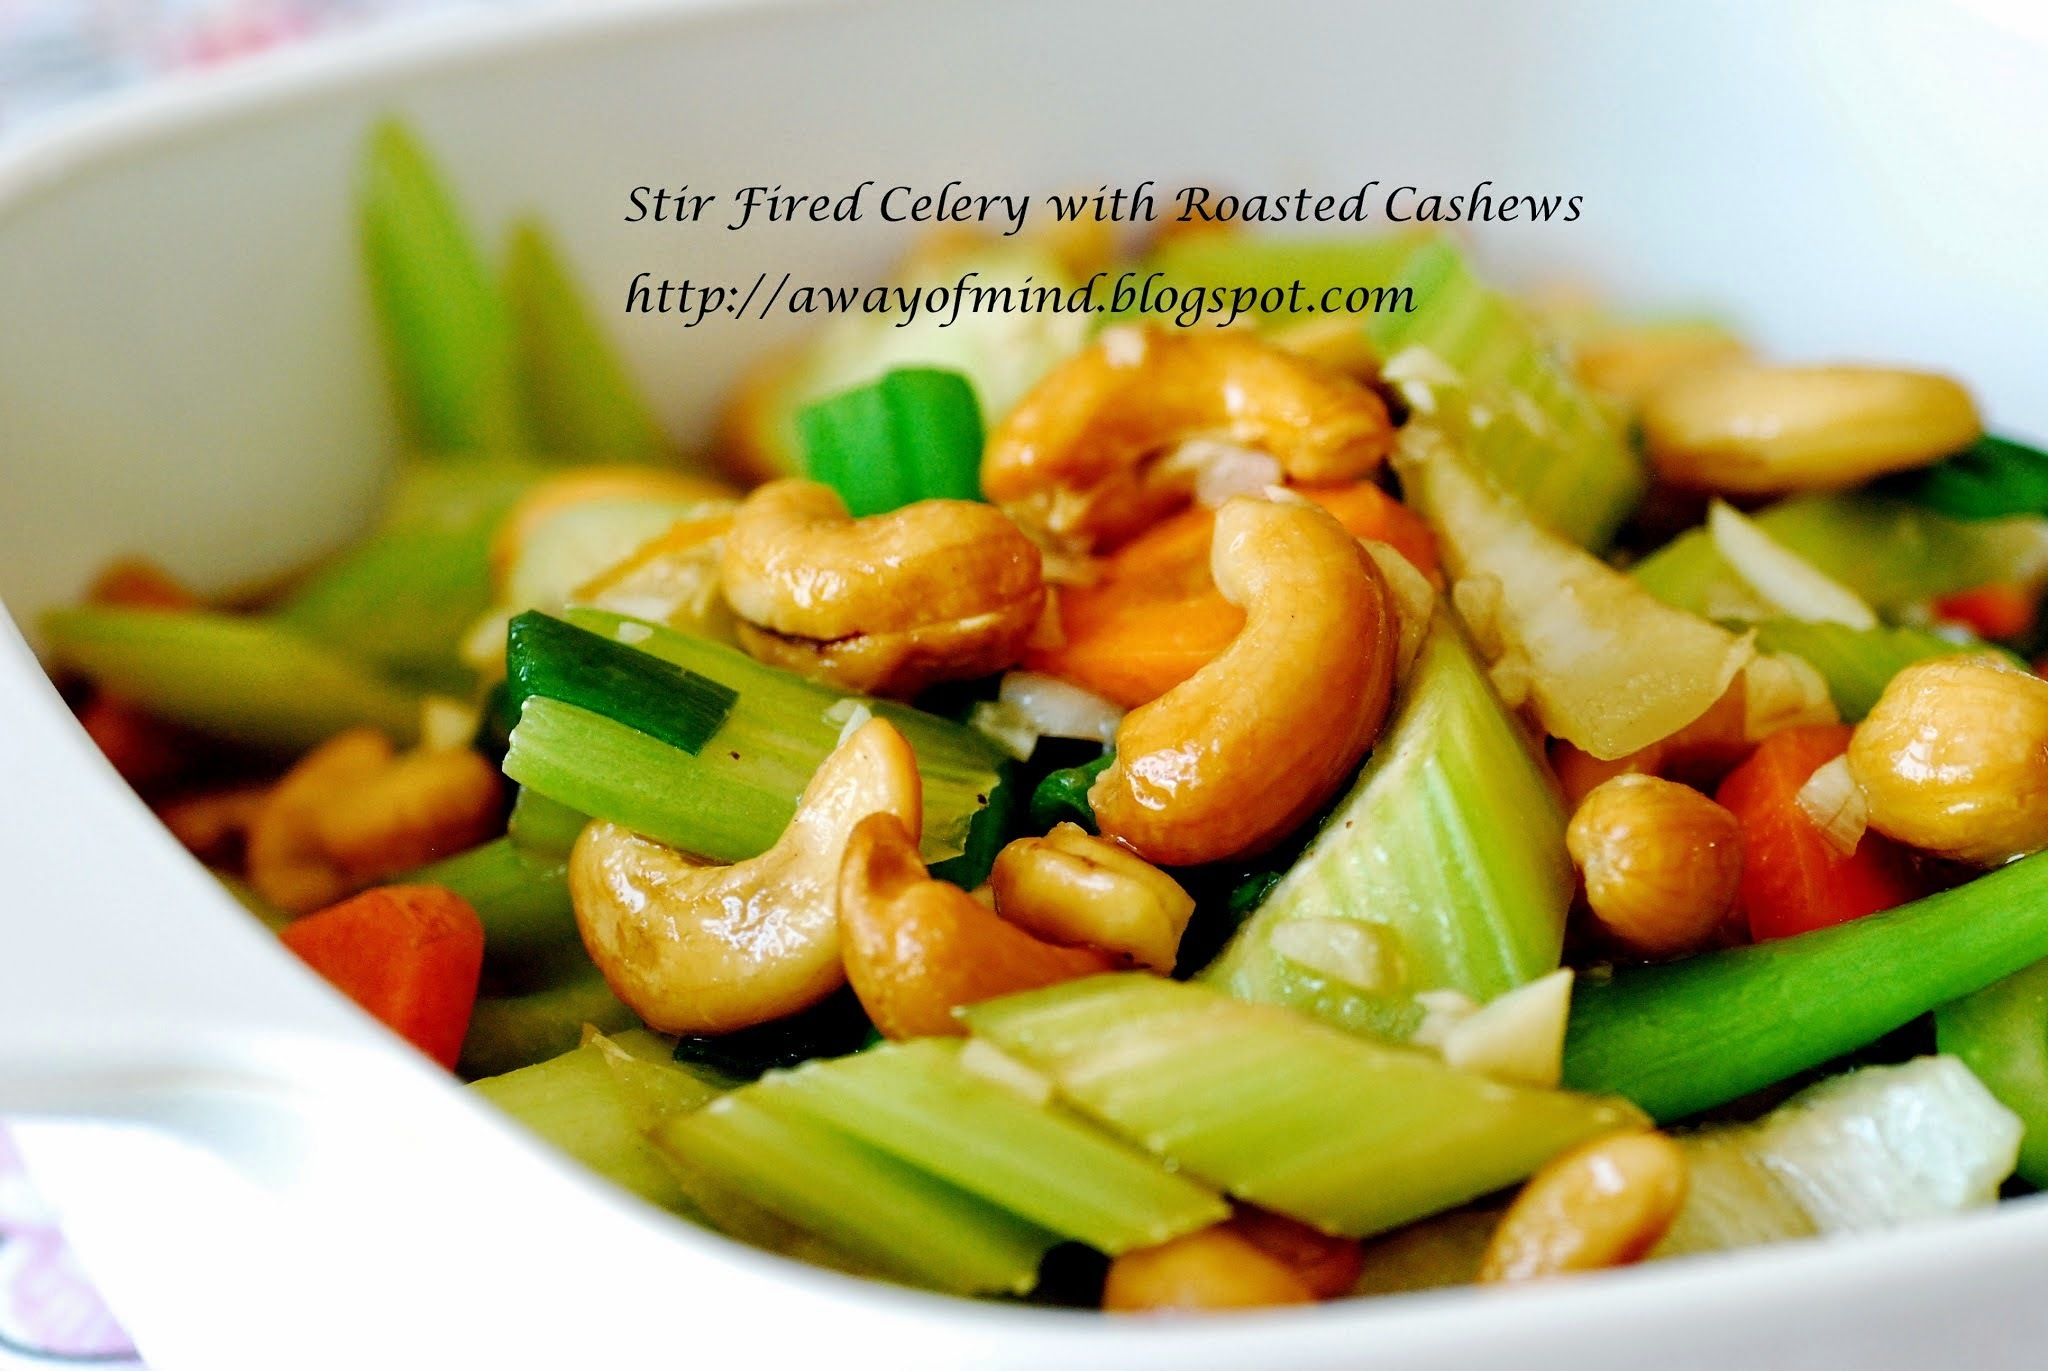 Stir Fried Celery with Roasted Cashews